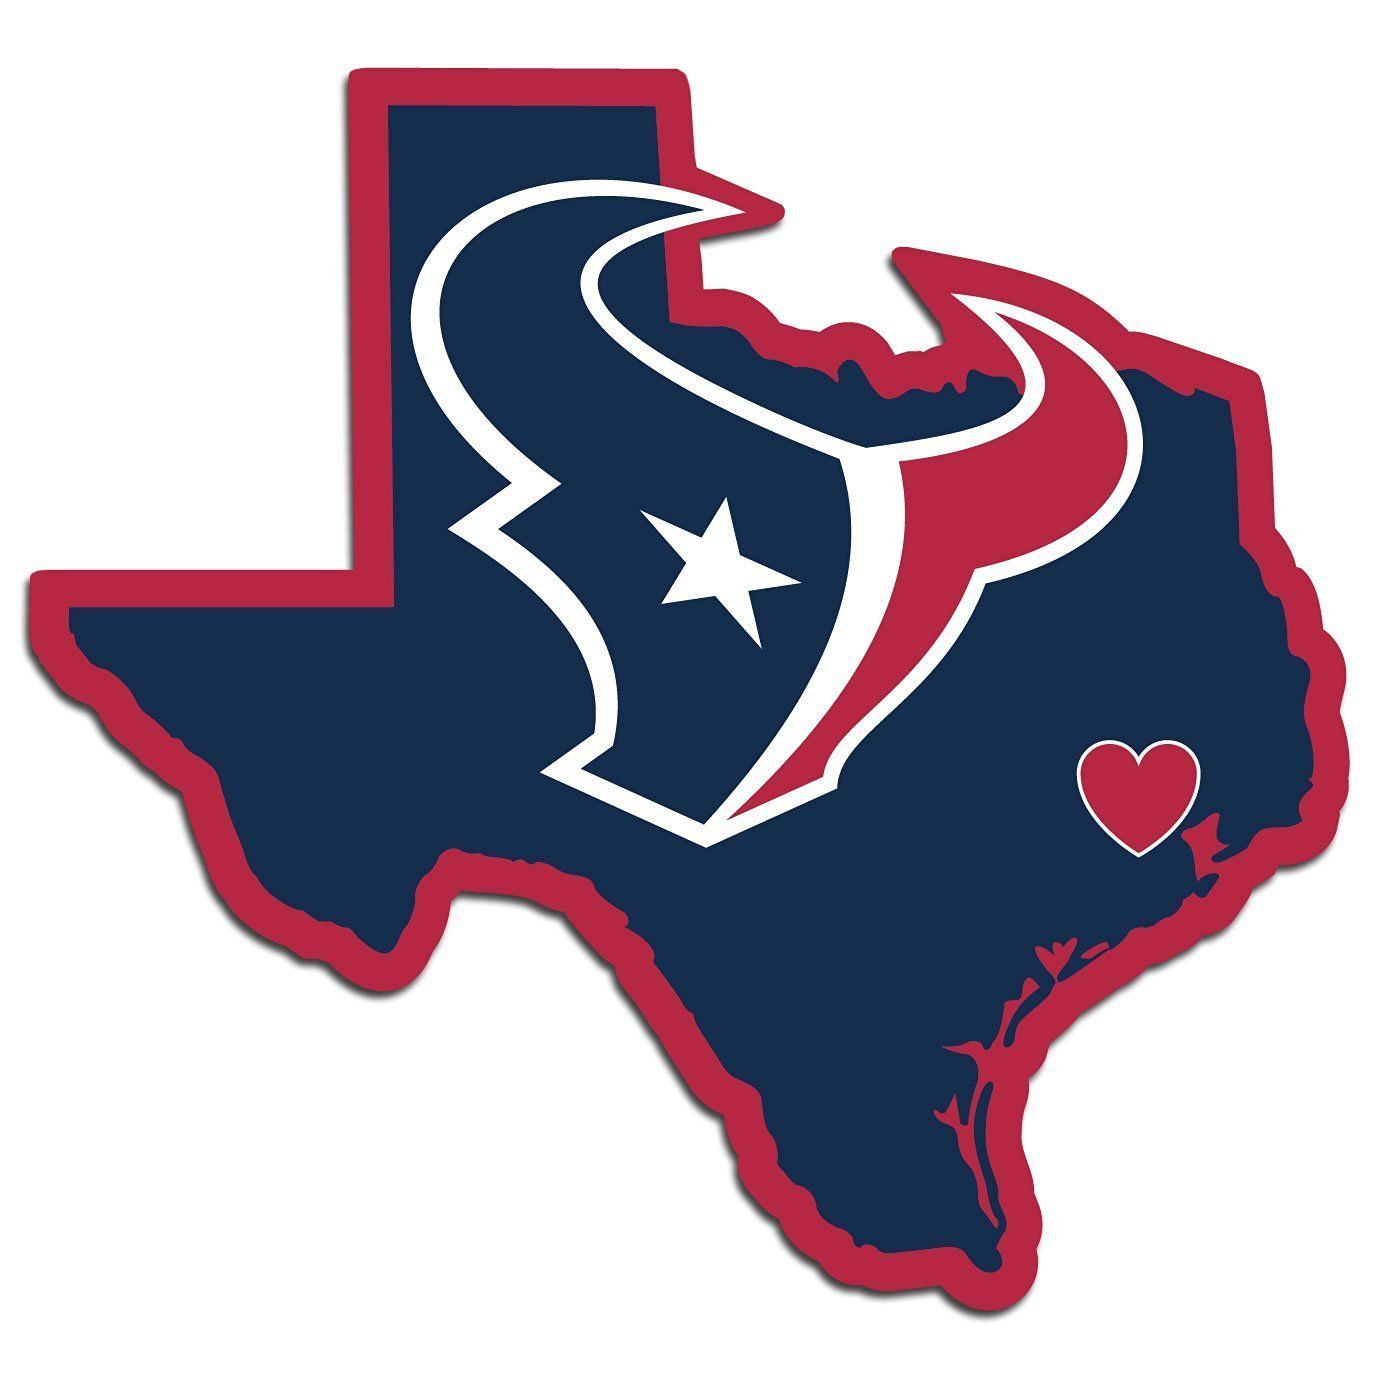 Official Houston Texans Nfl Football Home State Auto Car Sticker Window Decal [ 1379 x 1379 Pixel ]